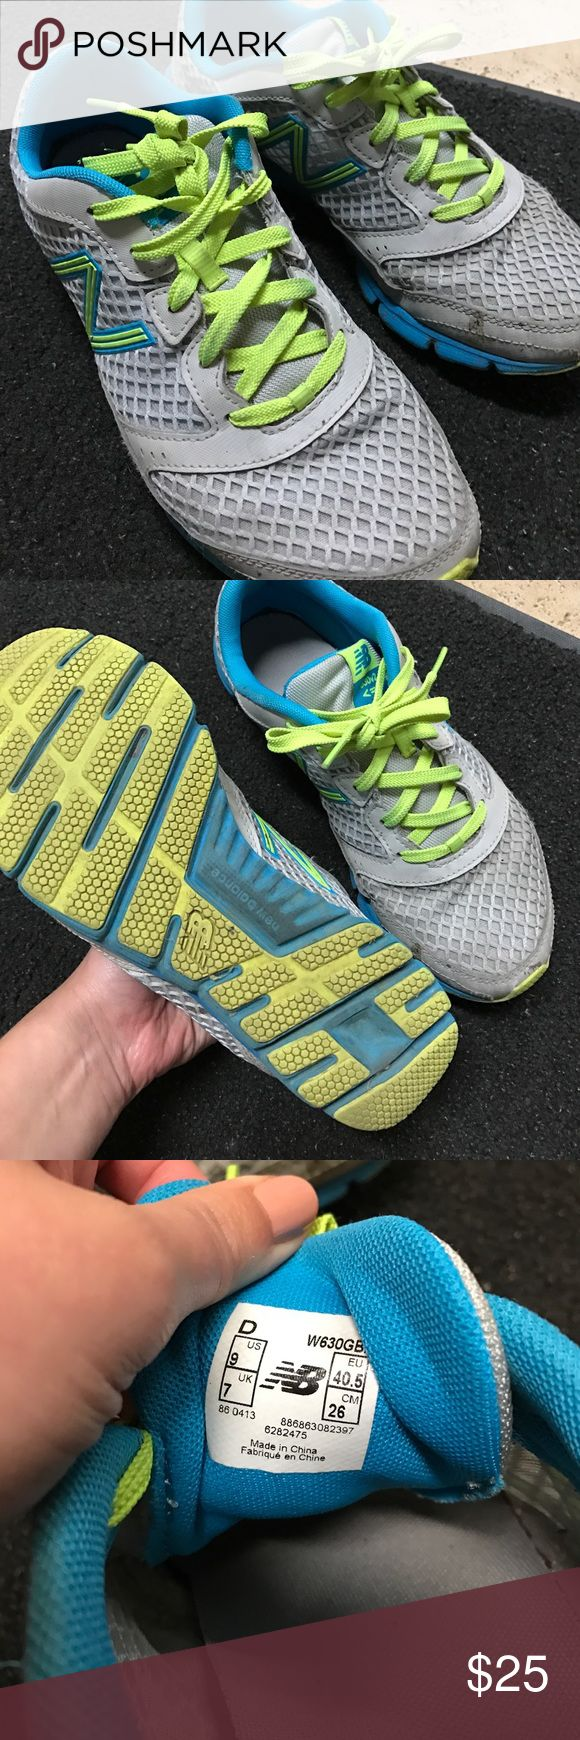 New balance recycled shoes - New Balance Gray Neon Green Sneakers